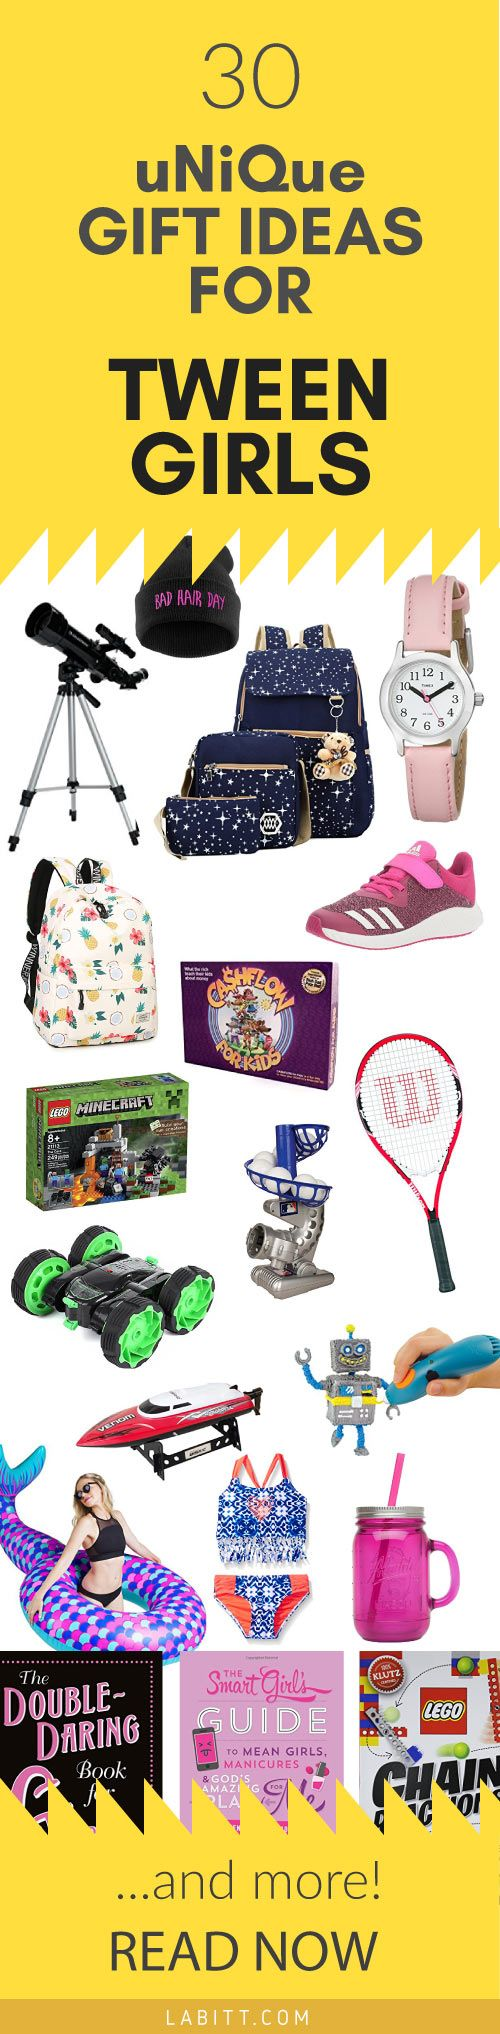 What do you think of this list of 30 Gift Ideas for Tween Girls? There are sports gifts, stem gifts, and other unique gifts for a tween girl aged 8-14. Cute presents for a young girl's birthday, Christmas, or just because.